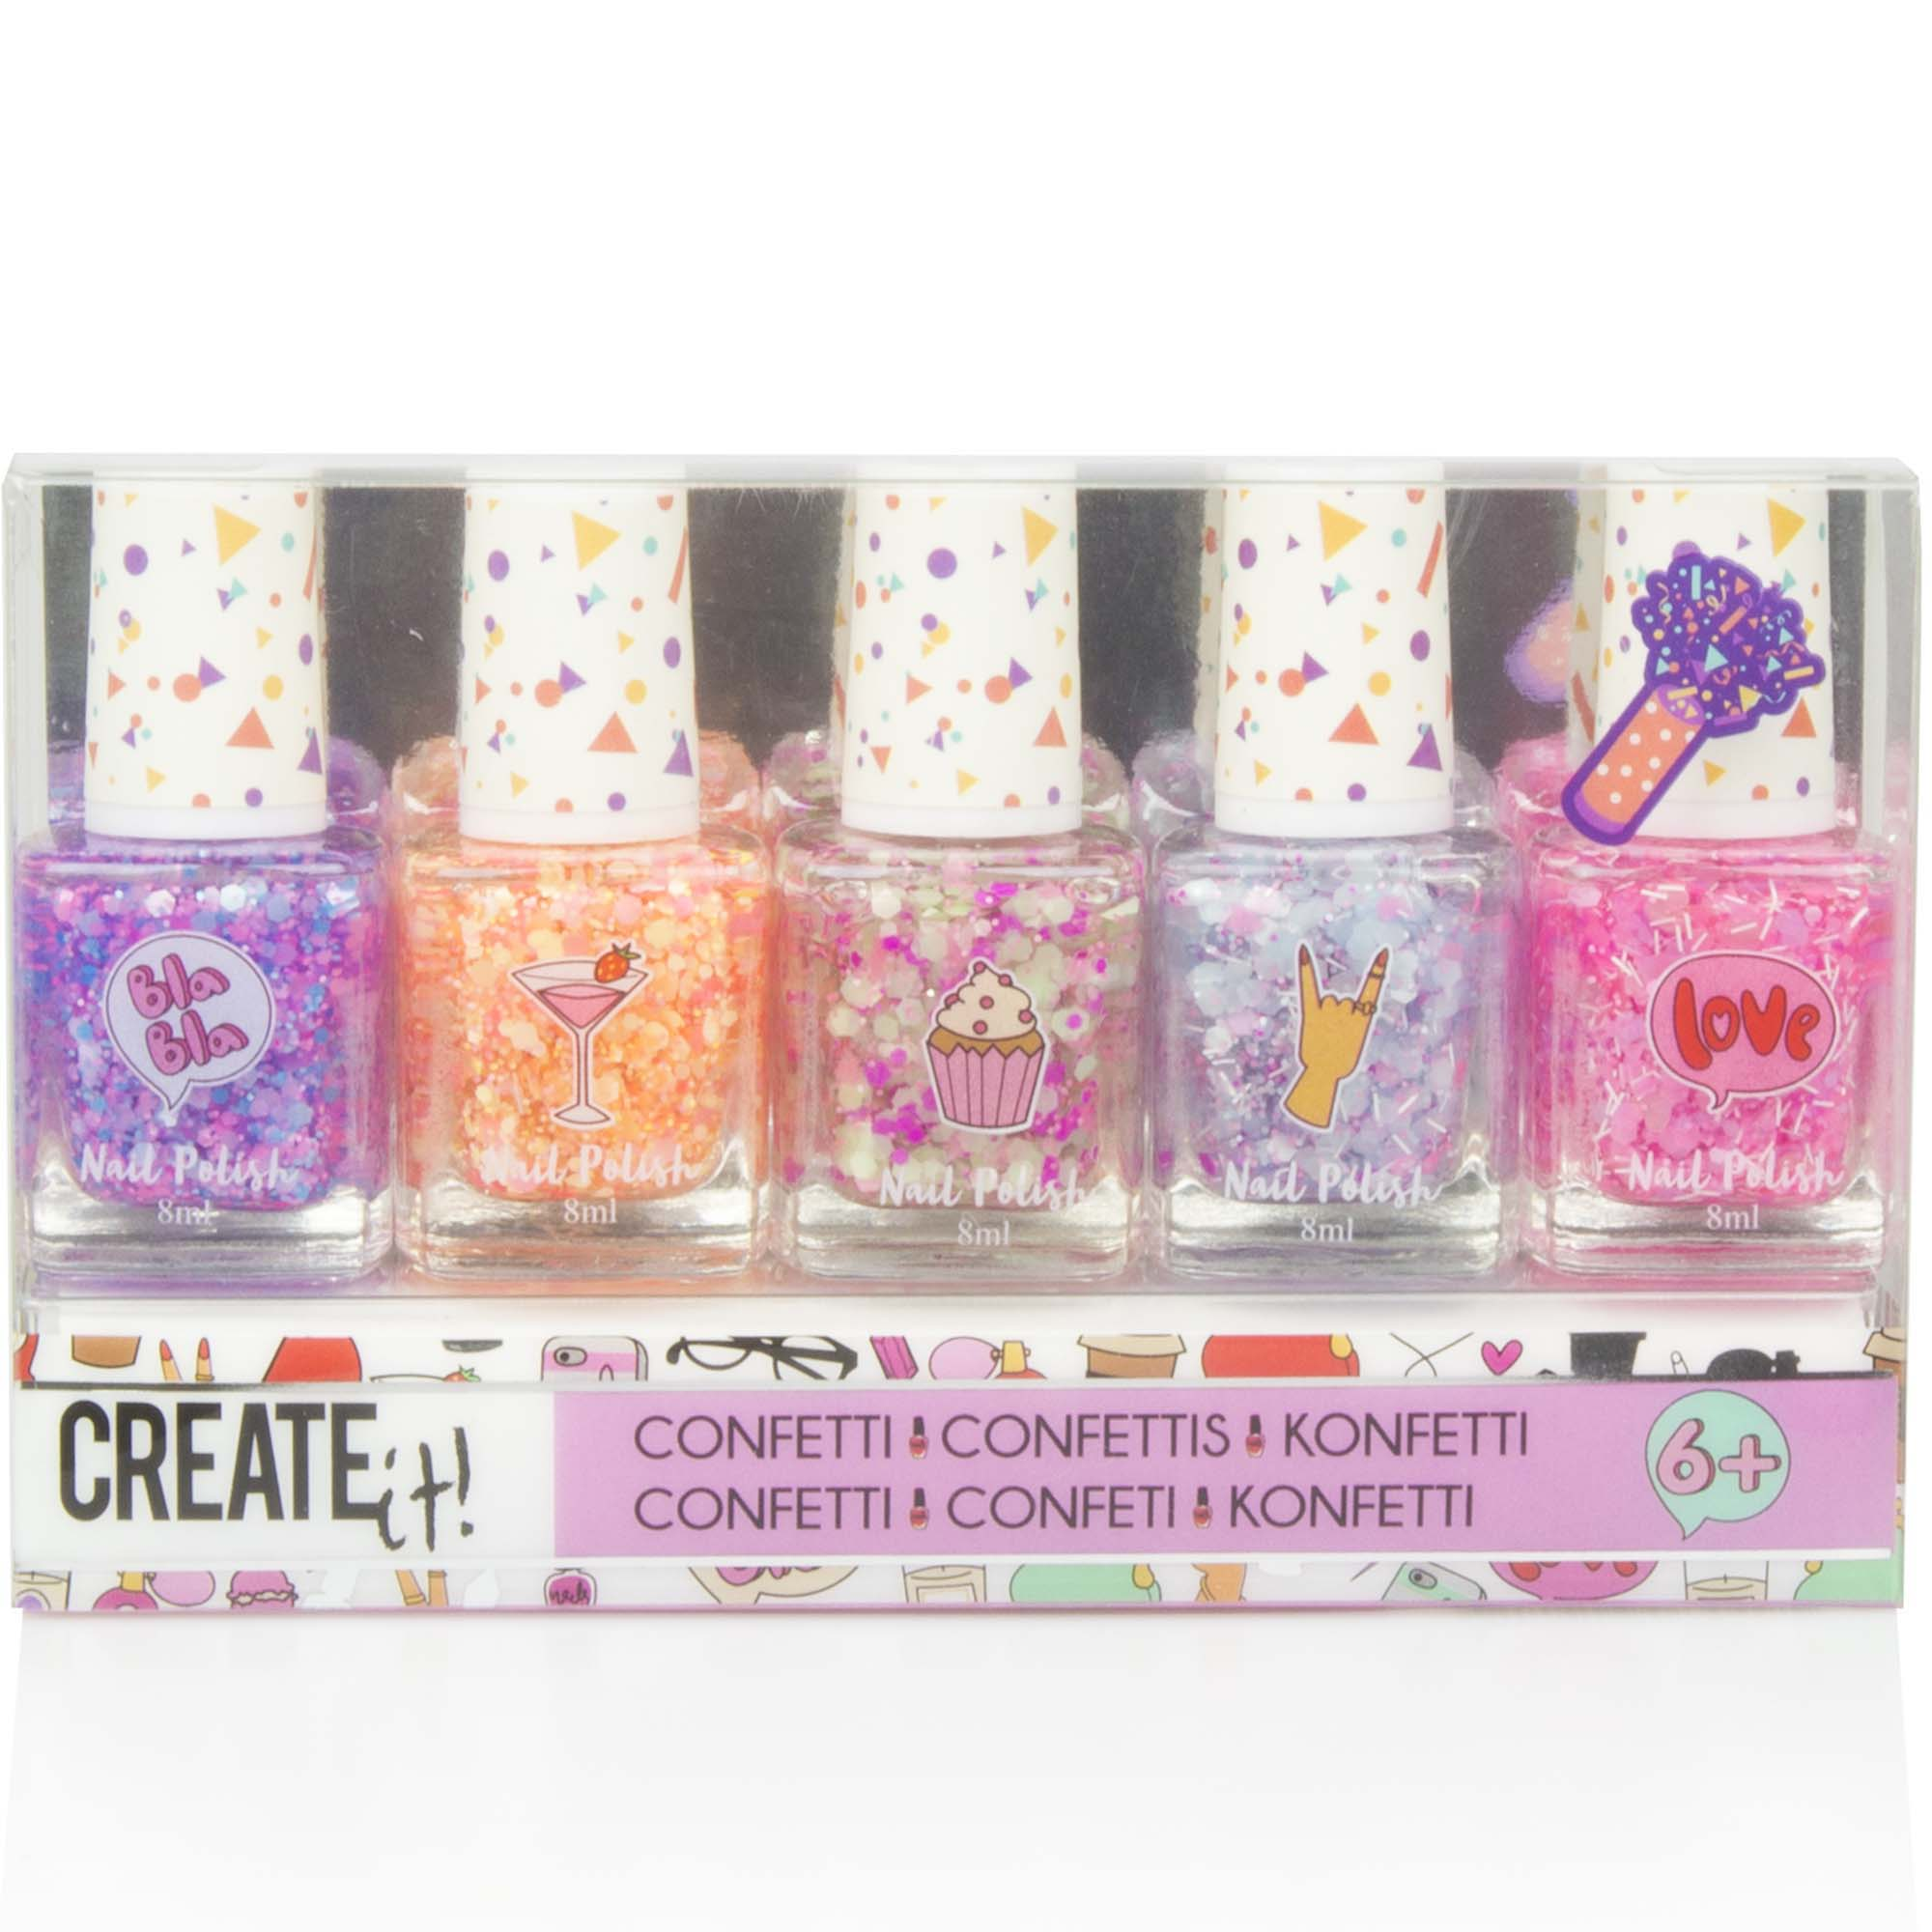 Create It! Negllak 5 pak med glitter